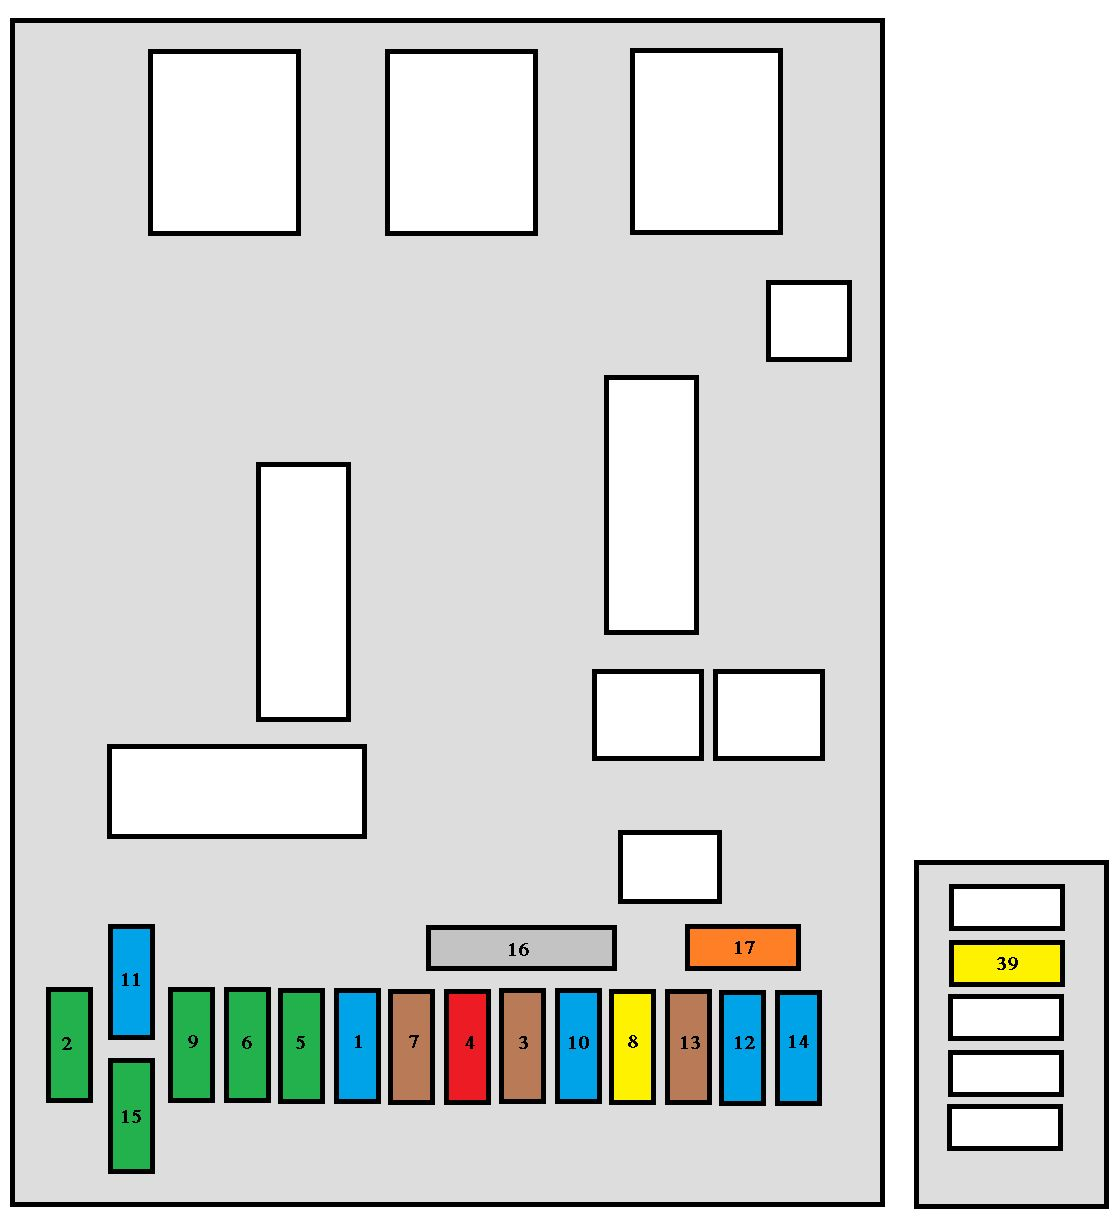 peugeot fuse box 207 wiring diagram citroen c3 engine fuse box layout